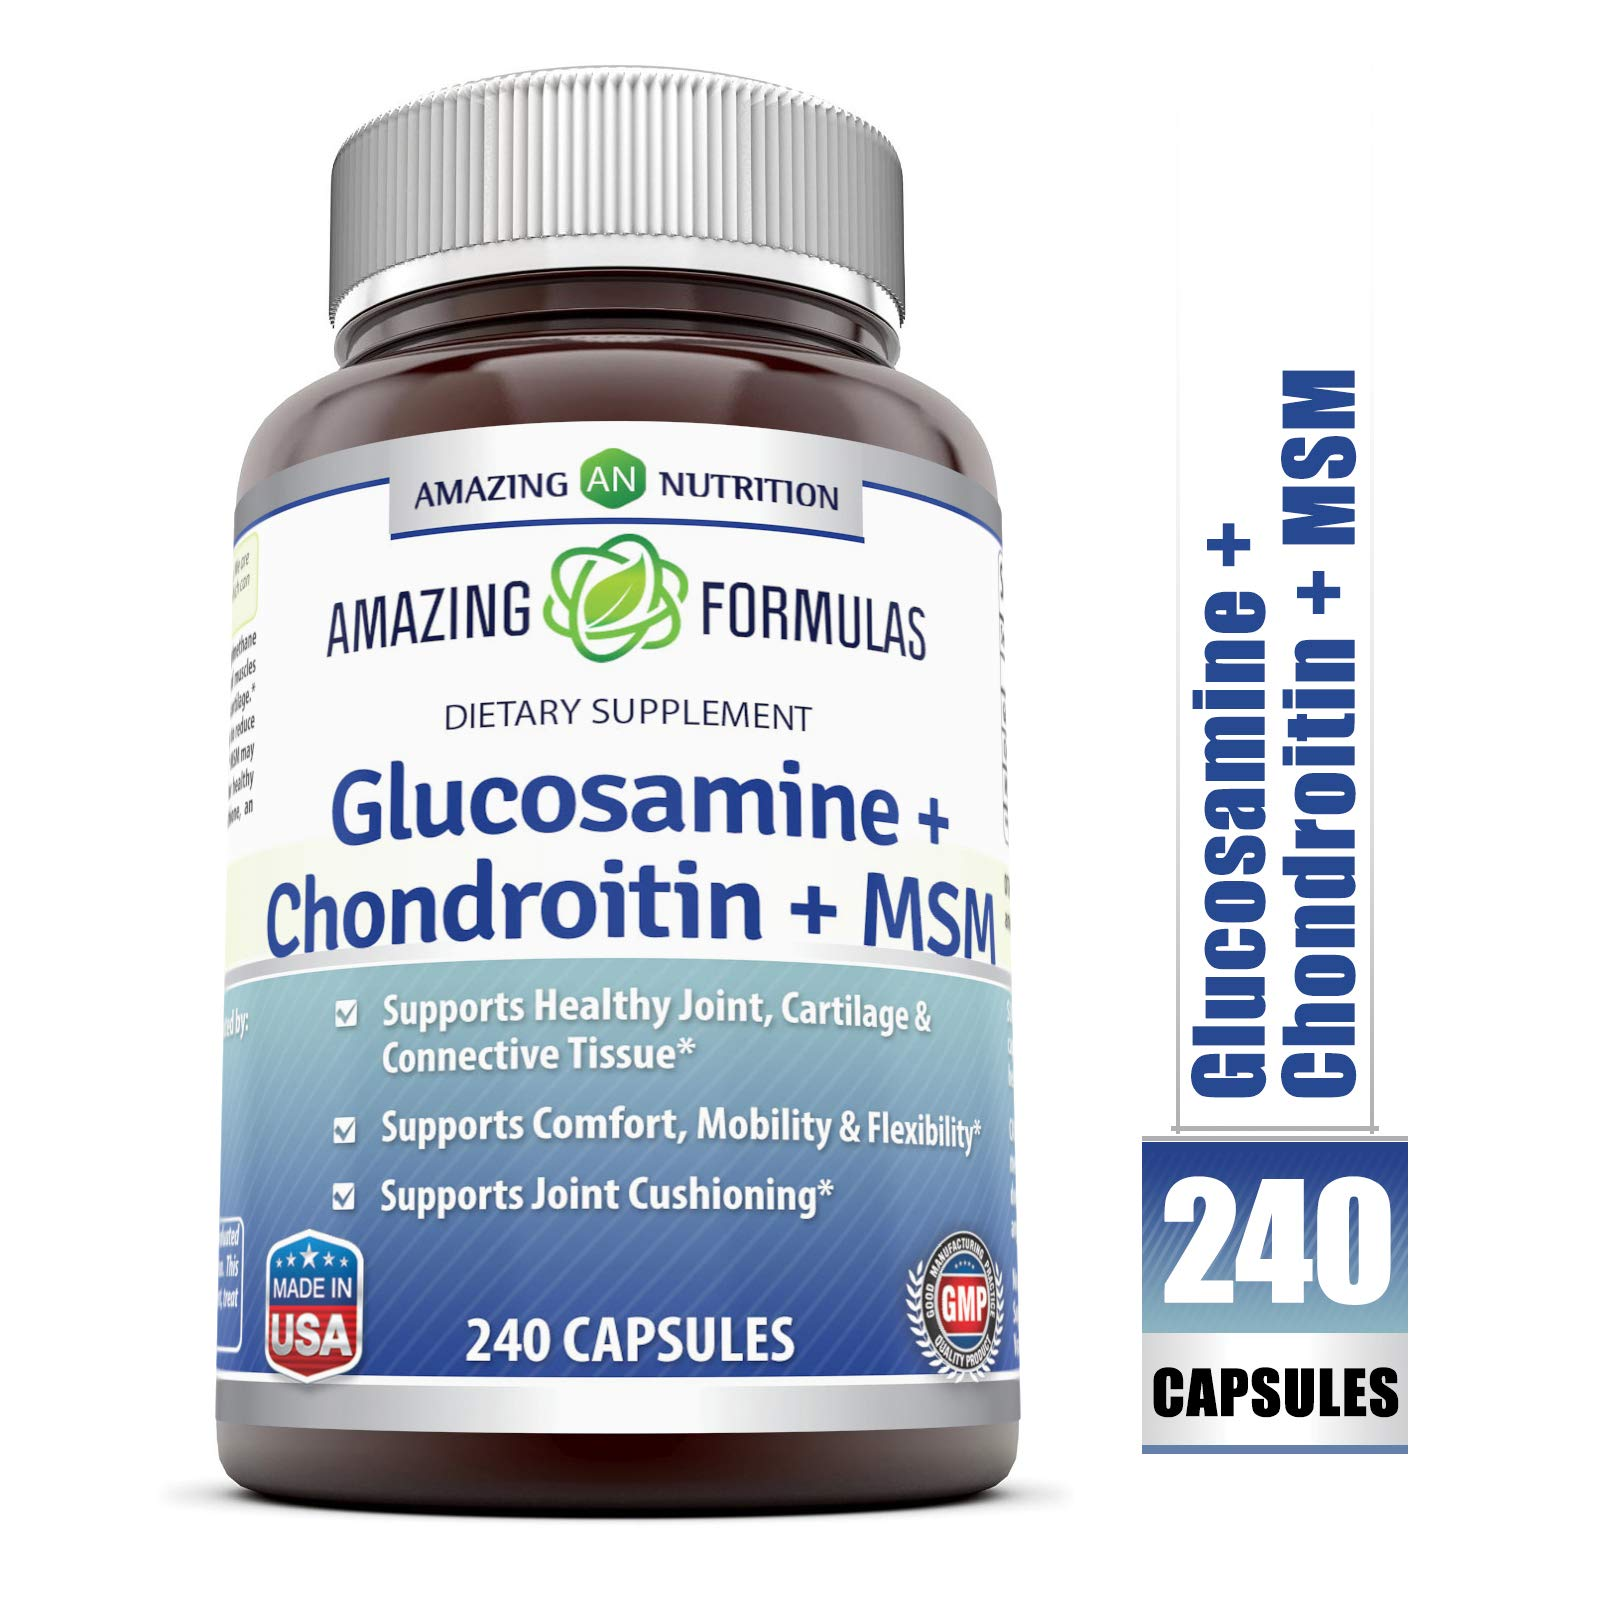 Amazing Formulas Glucosamine + Chondroitin + MSM - 240 Capsules - Supports Healthy Joint, Cartilage and Connective Tissue - Promotes Joint Comfort & Flexibility (240 Capsules) by Amazing Nutrition